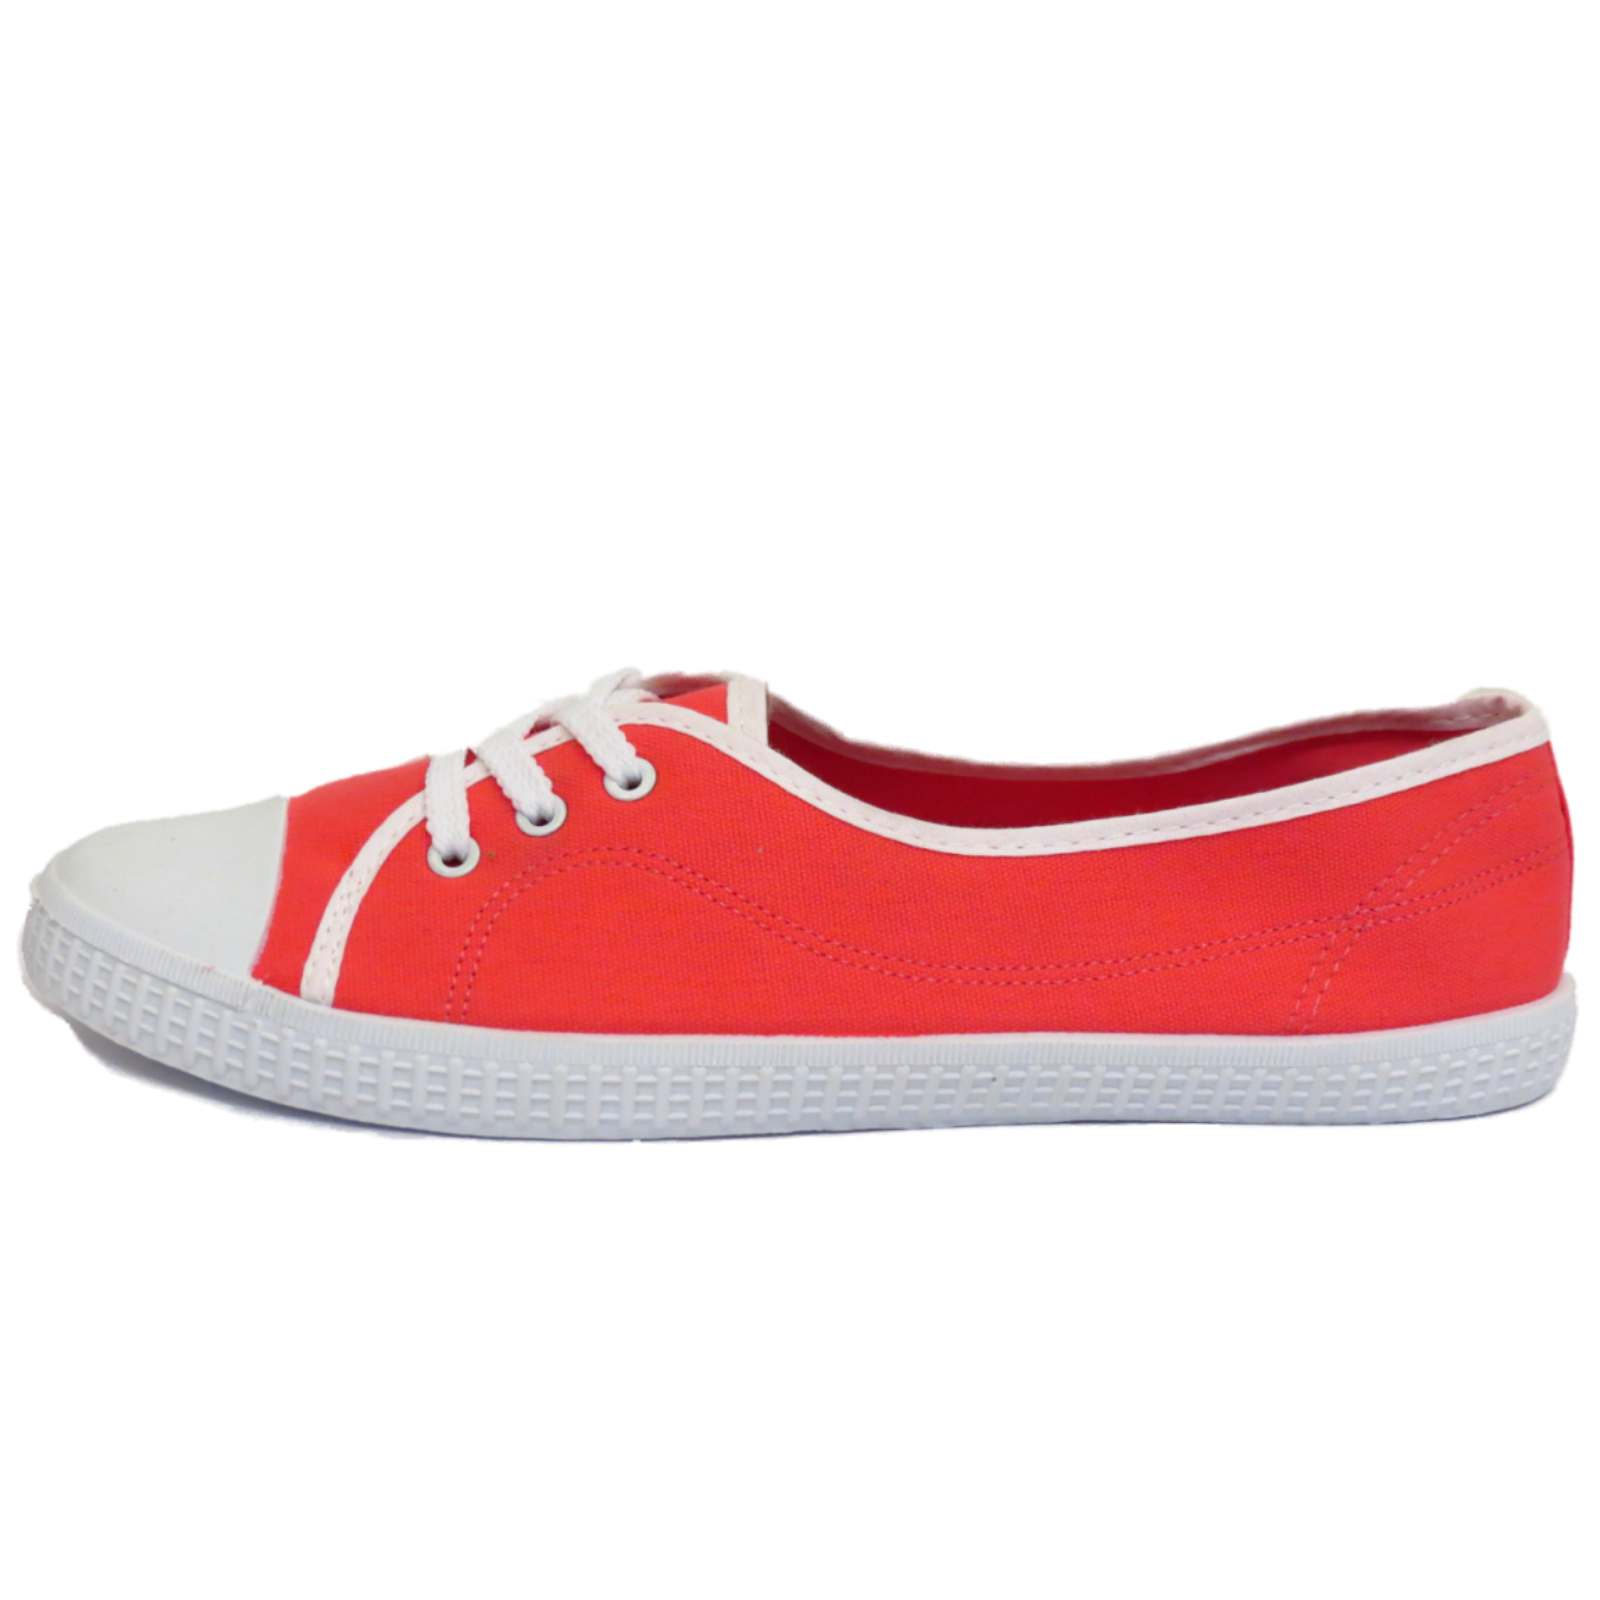 Vans Classic Slip-On Unisex Canvas Trainers Red - 42 EU